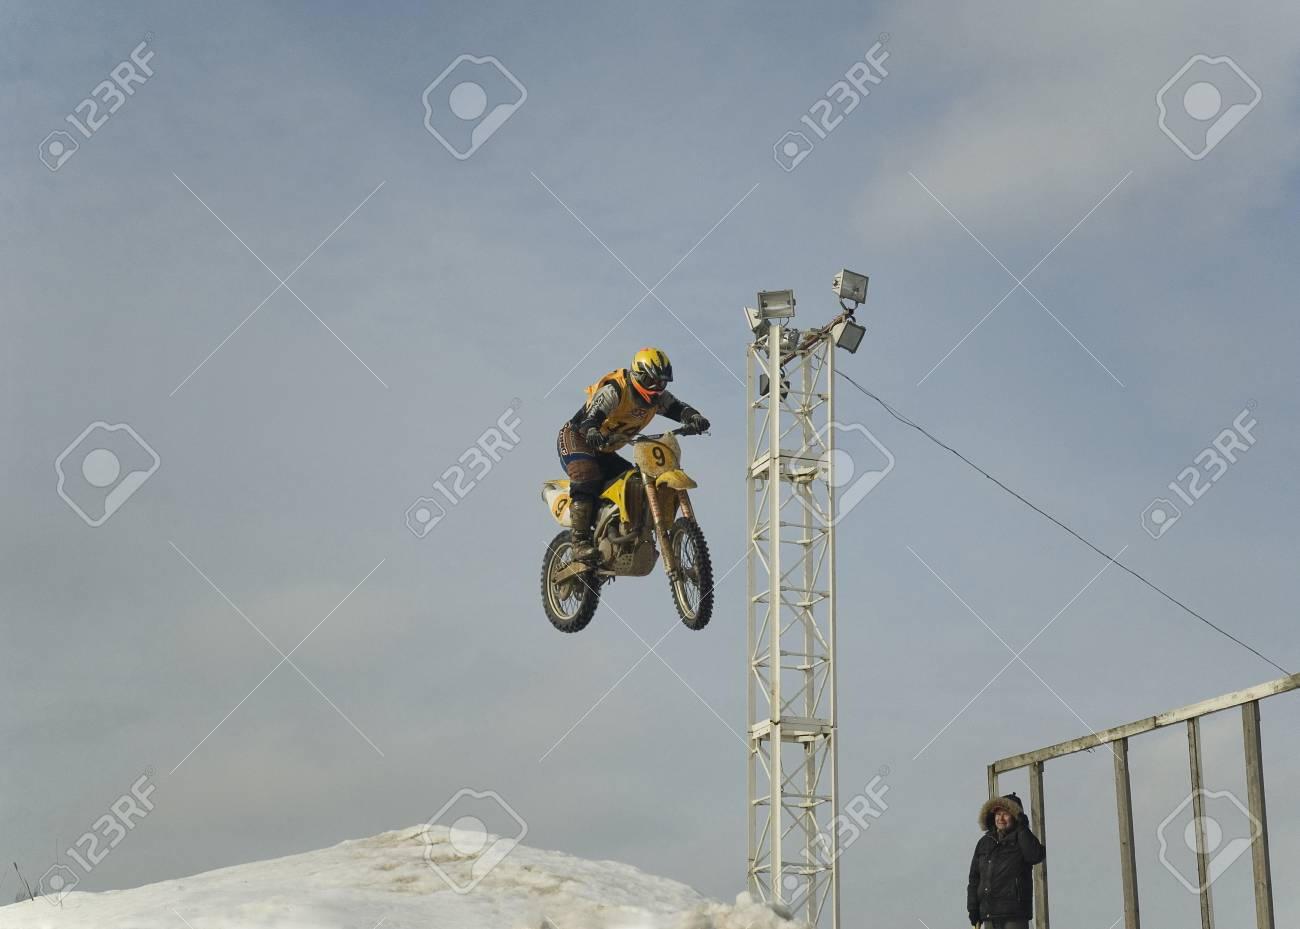 MOSCOW - FEBRUARY 28: Unrecognised sportsman on a second tour of motocross of Red Racing Group club on February 28, 2010 in Moscow, Krilatskoe, Russia Stock Photo - 9073802